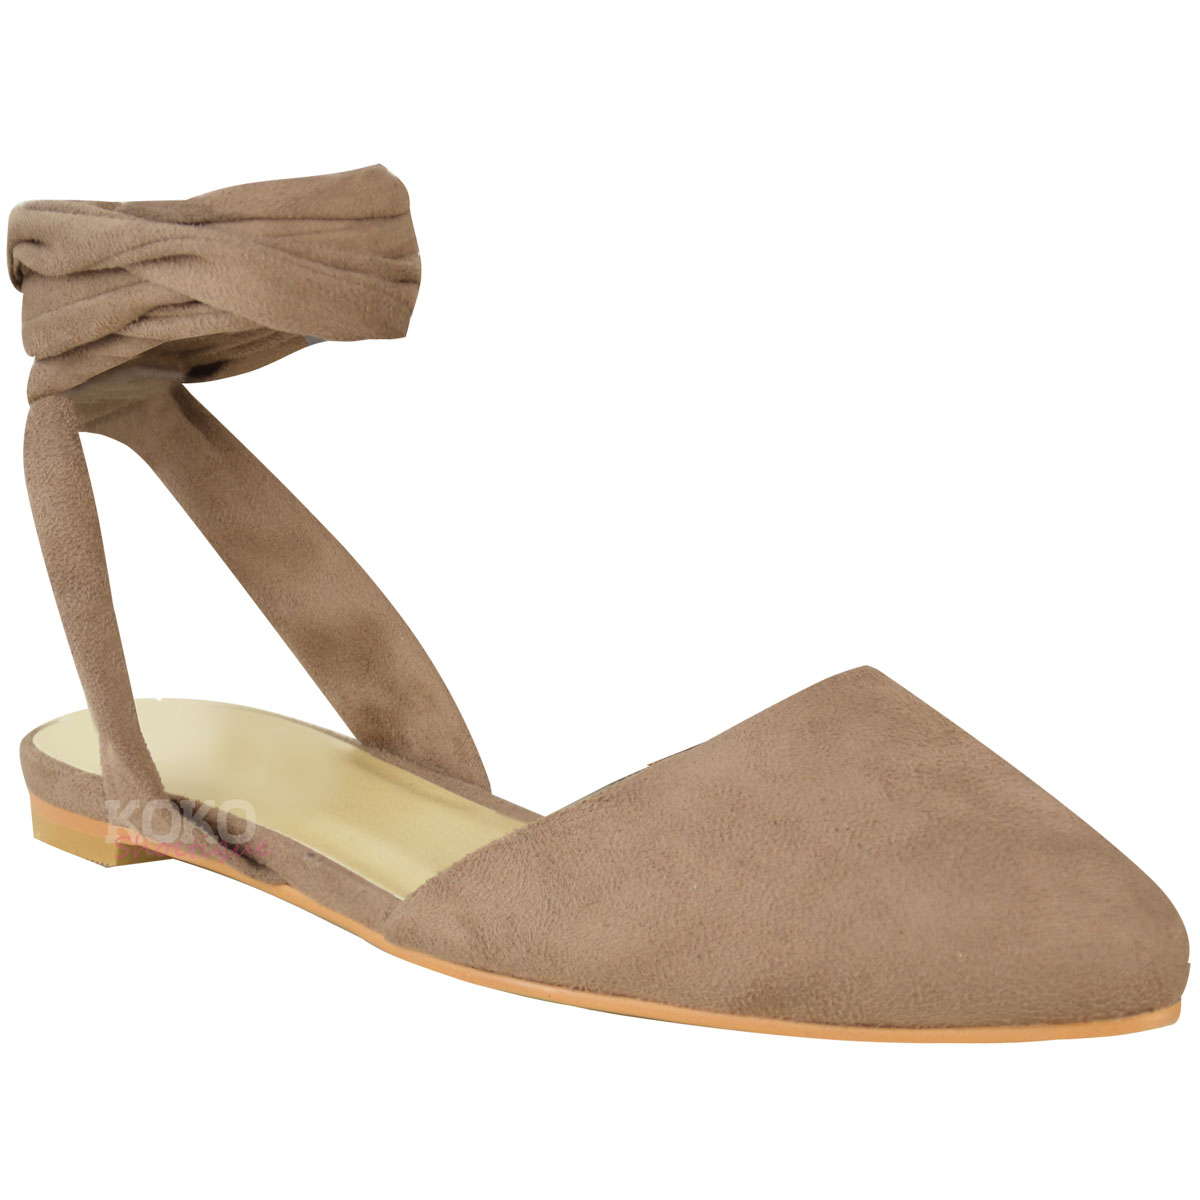 Elegant Flat Sandals Such As Slip Ons, Ballet Shoes, Tstrap Sandals And Strappy Sandals Would Complement Your Long Dress And Look Extremely Versatile Wedges Are